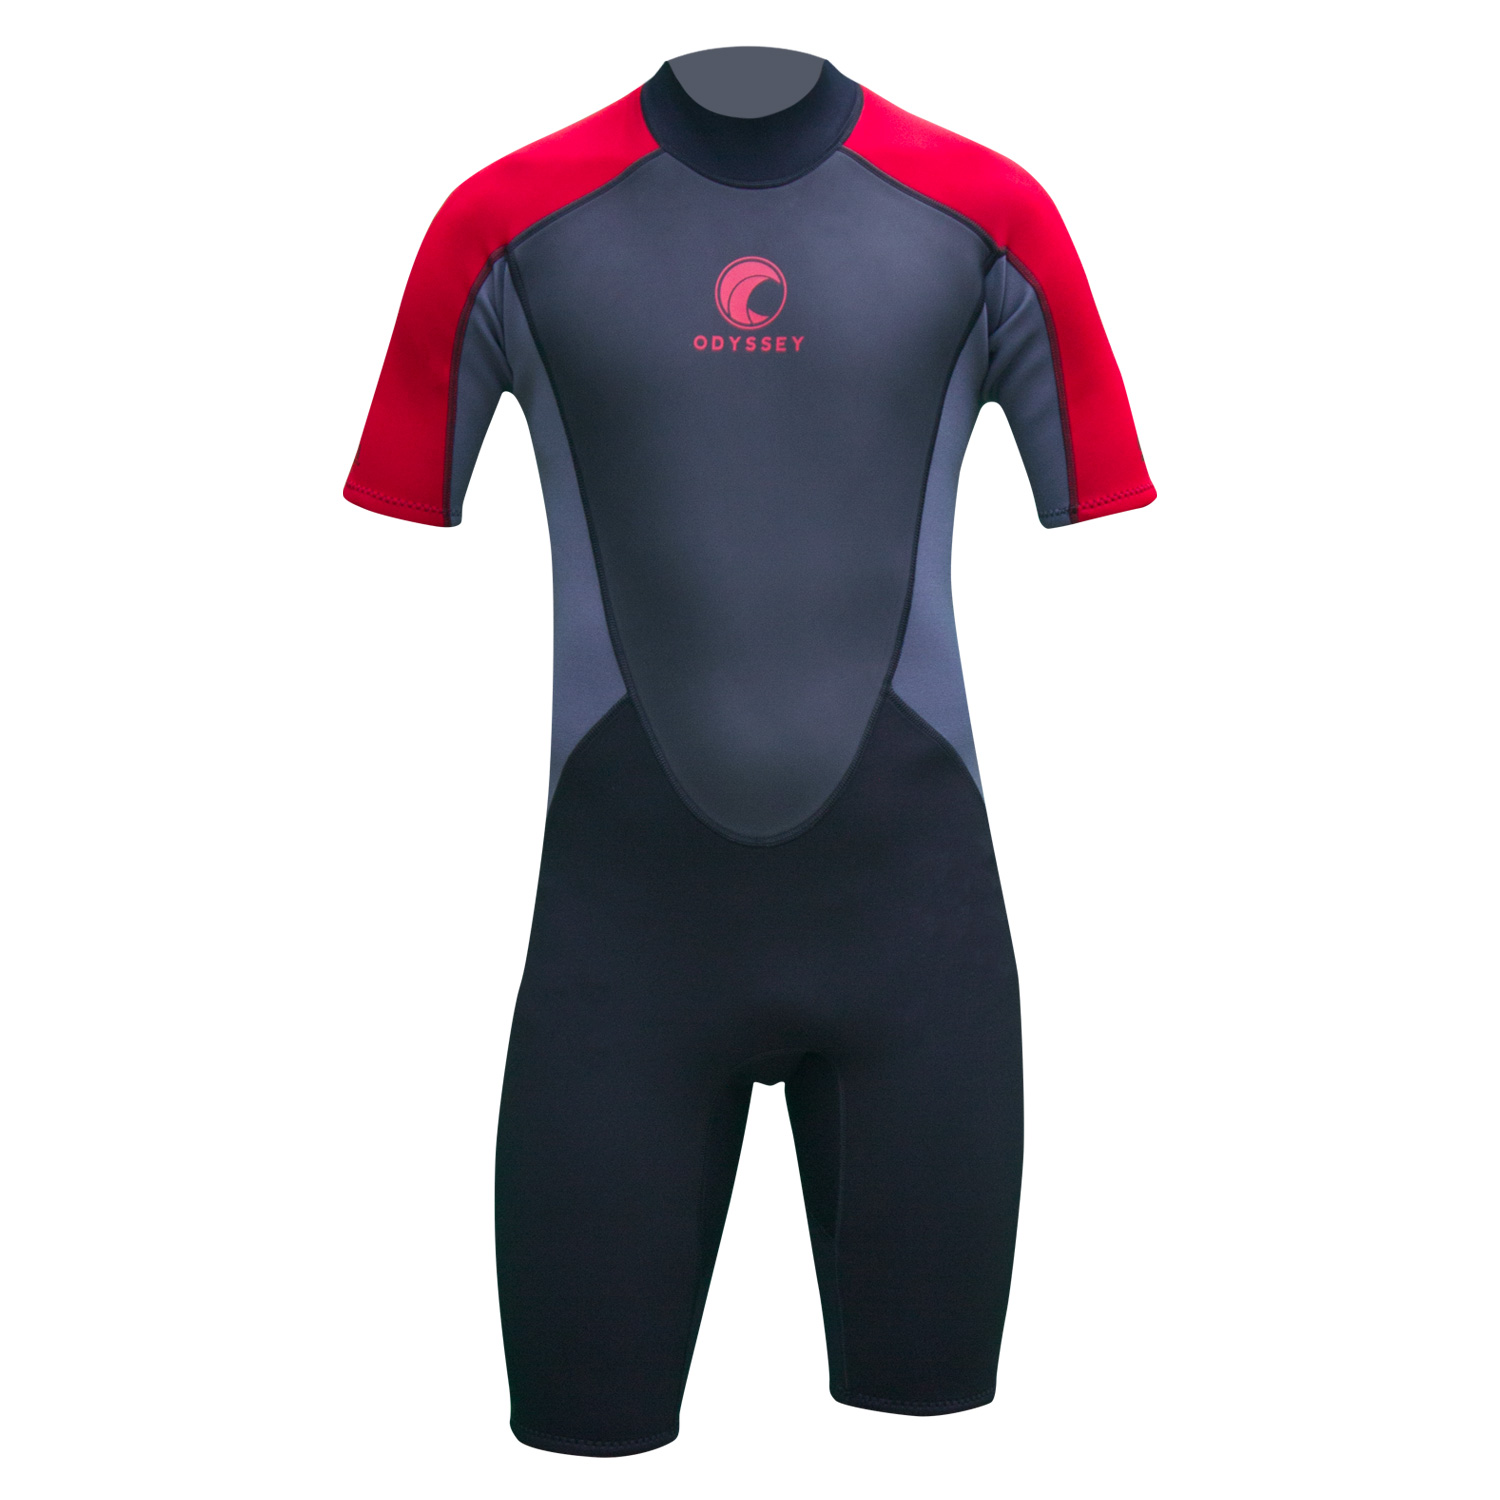 Odyssey-Core-3-2mm-Mens-Shorty-Wetsuit-Surf-Swim-Kayak-Shortie-Wet-Suit-S-XXL thumbnail 17